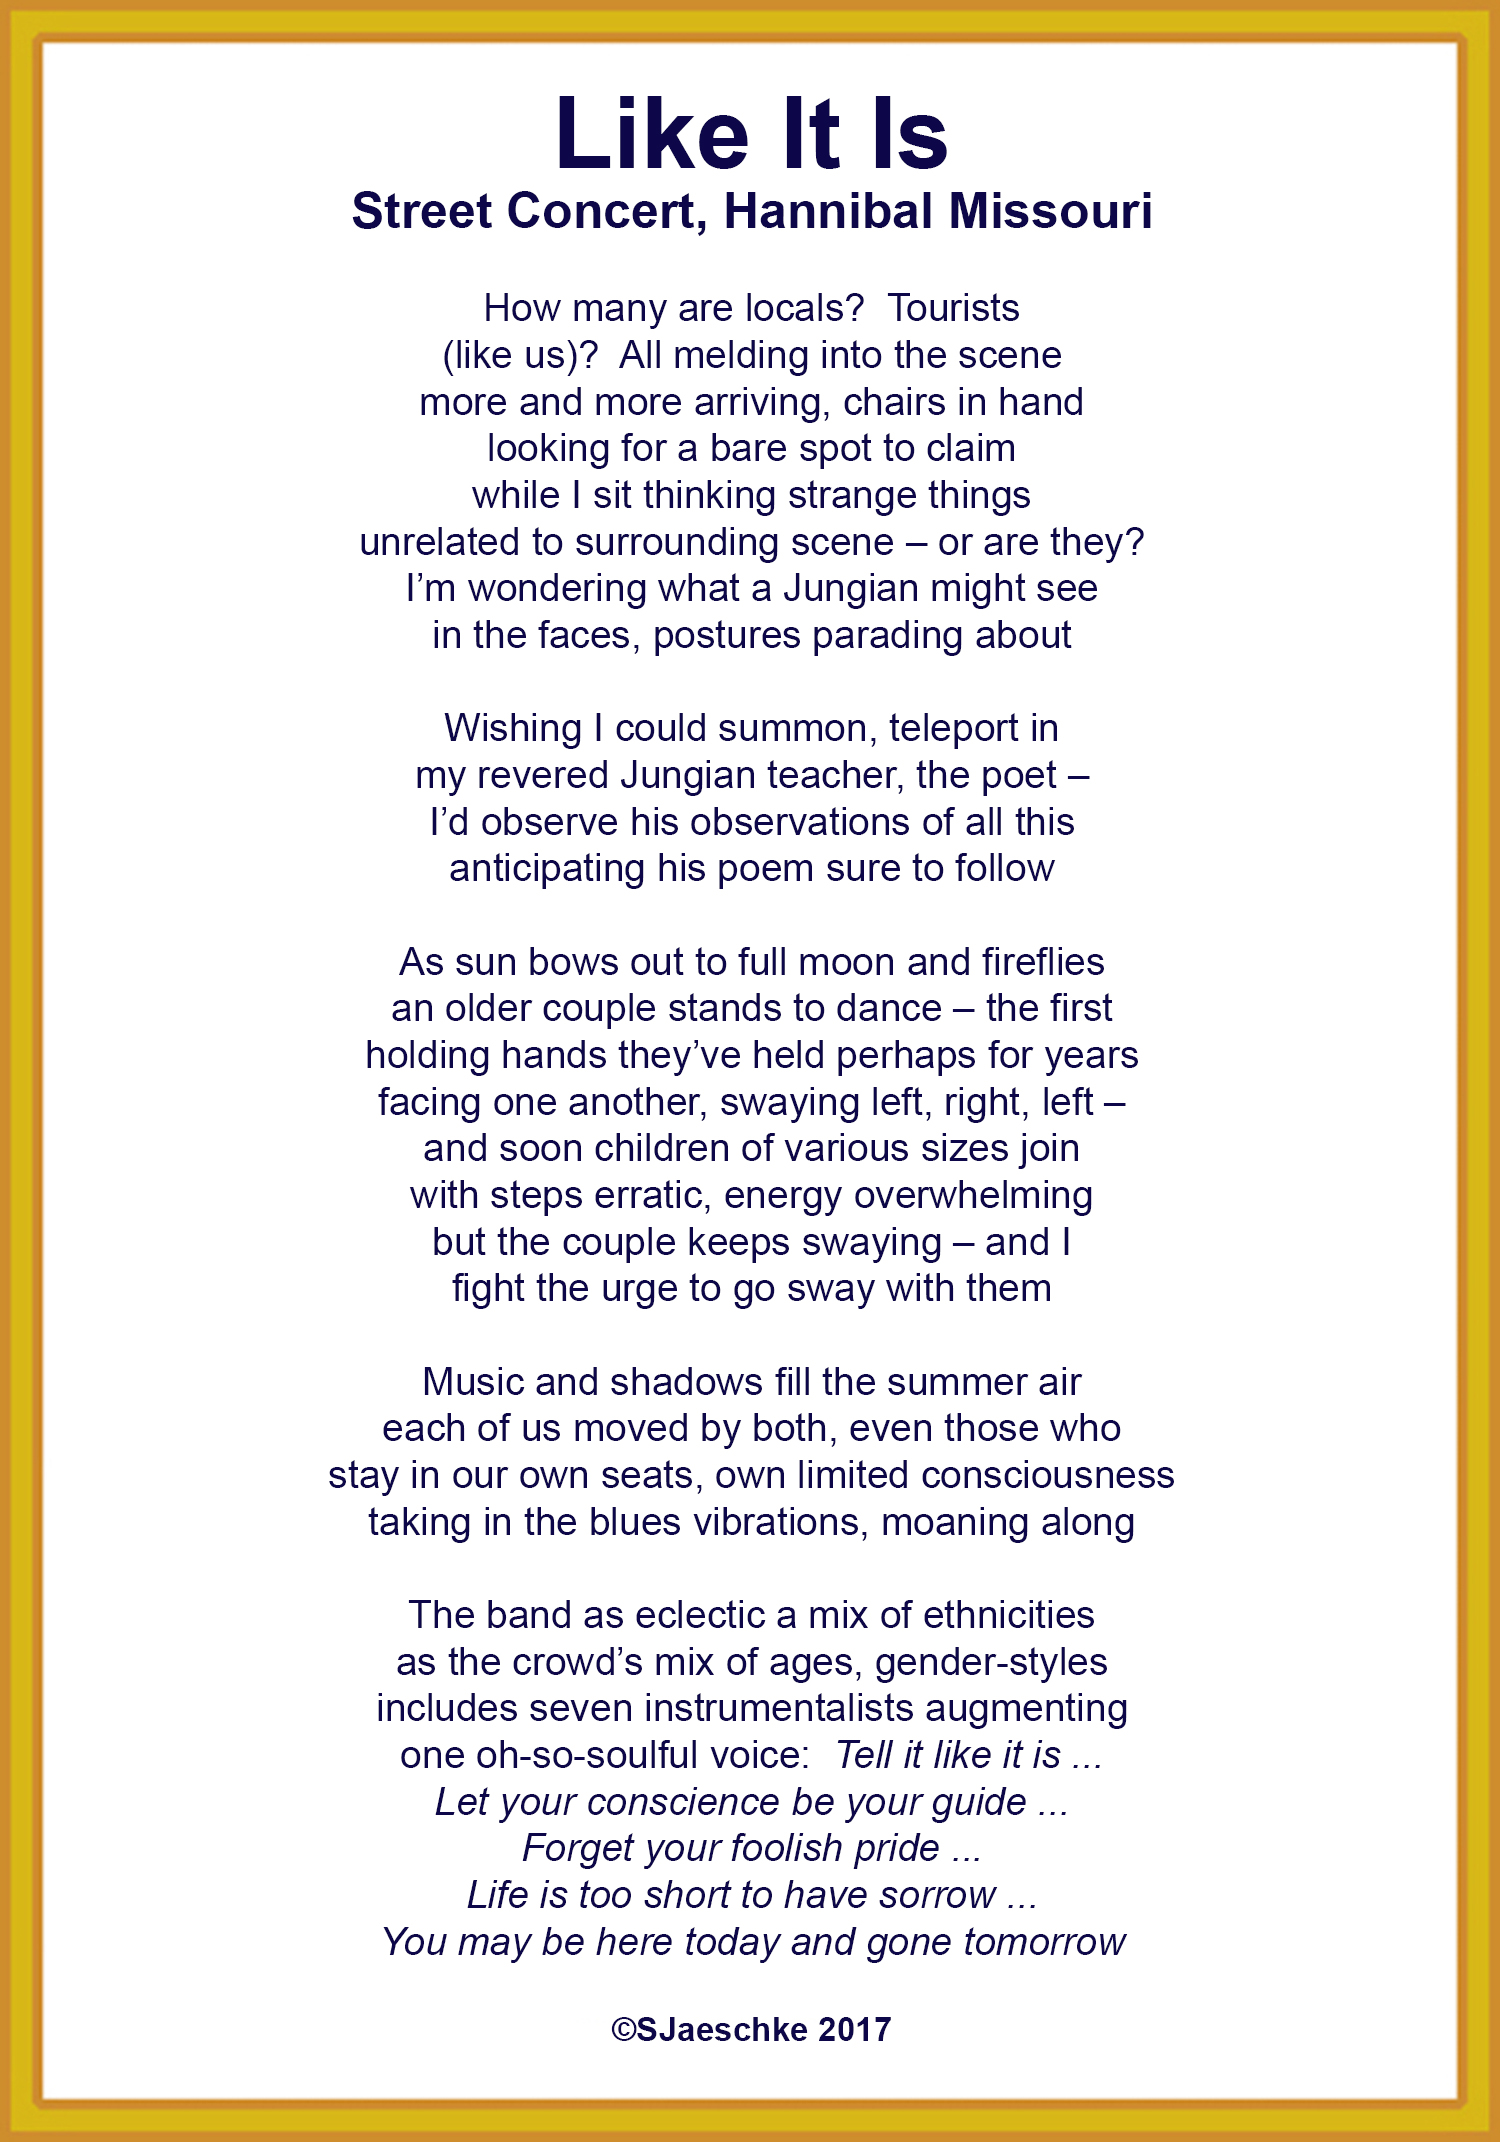 Post_2017-07-08_Poem_LikeItIs